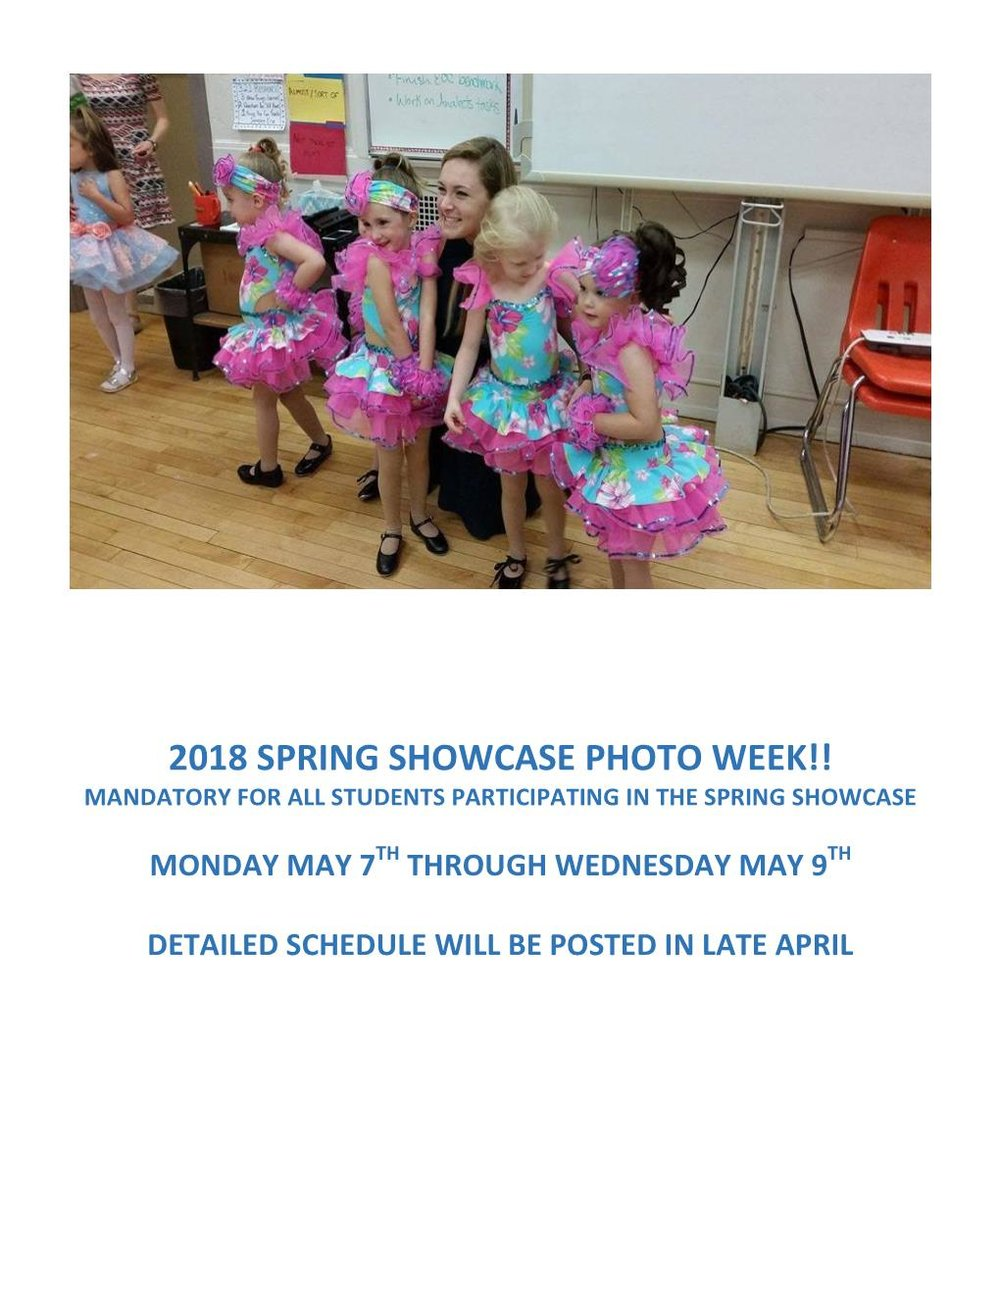 2018 SPRING SHOWCASE PHOTO WEEK.jpg